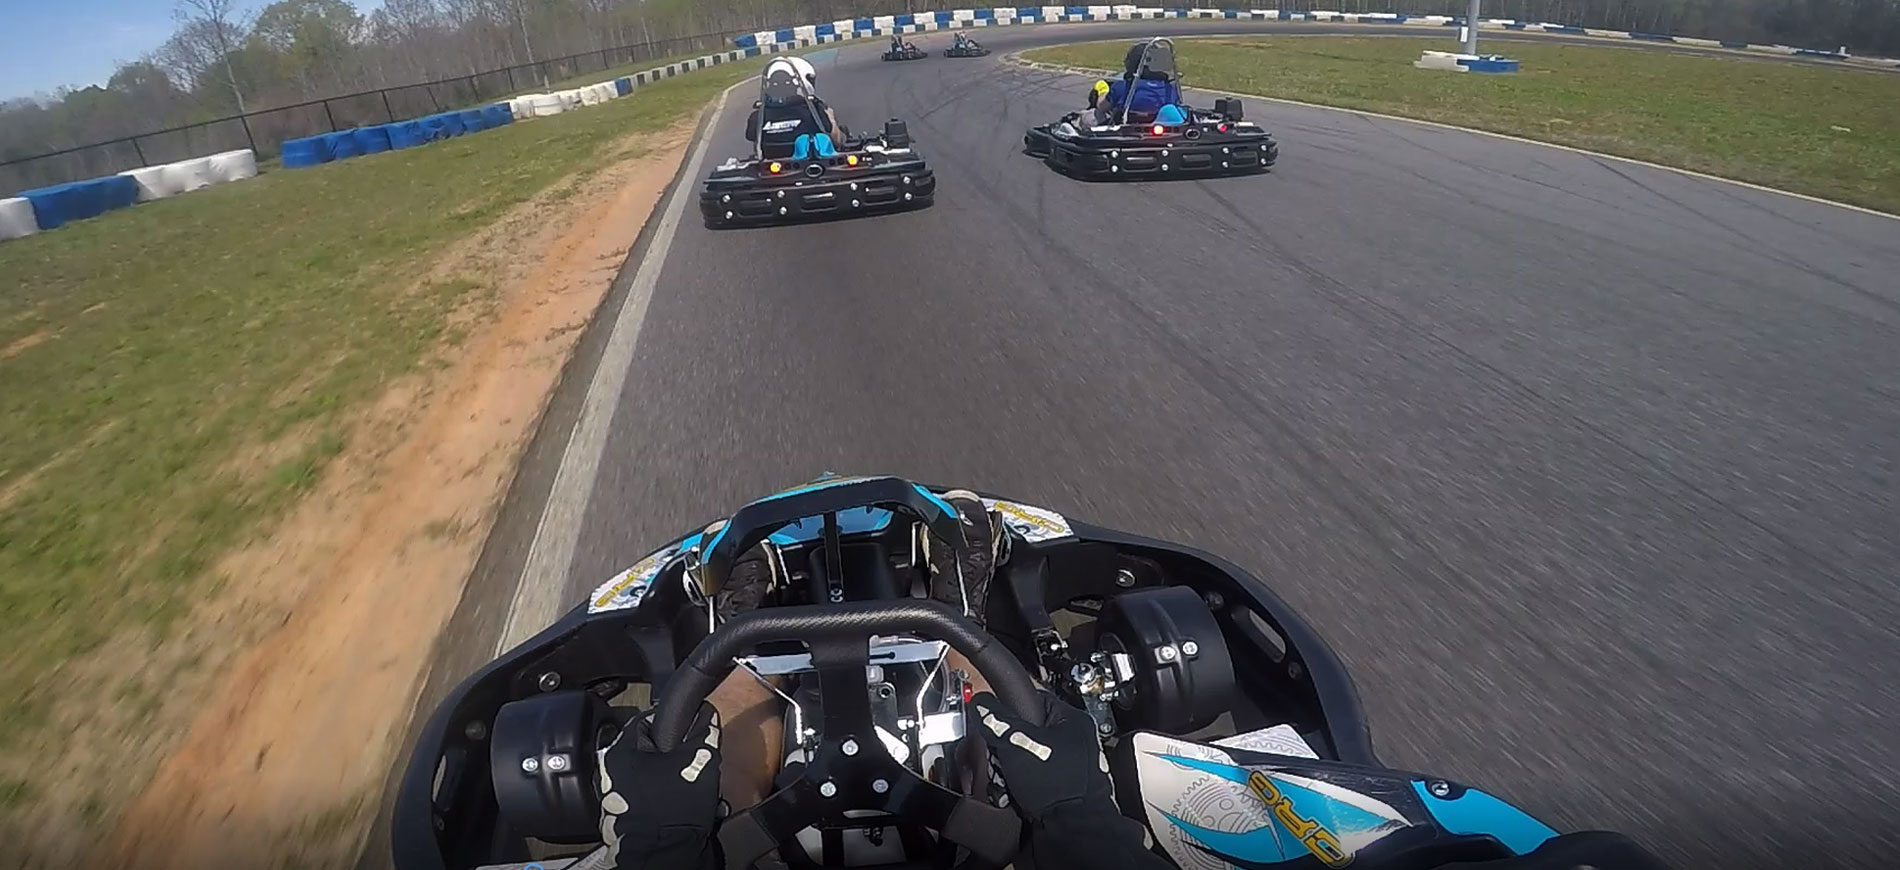 Relive Your Race: Rent a GoPro!